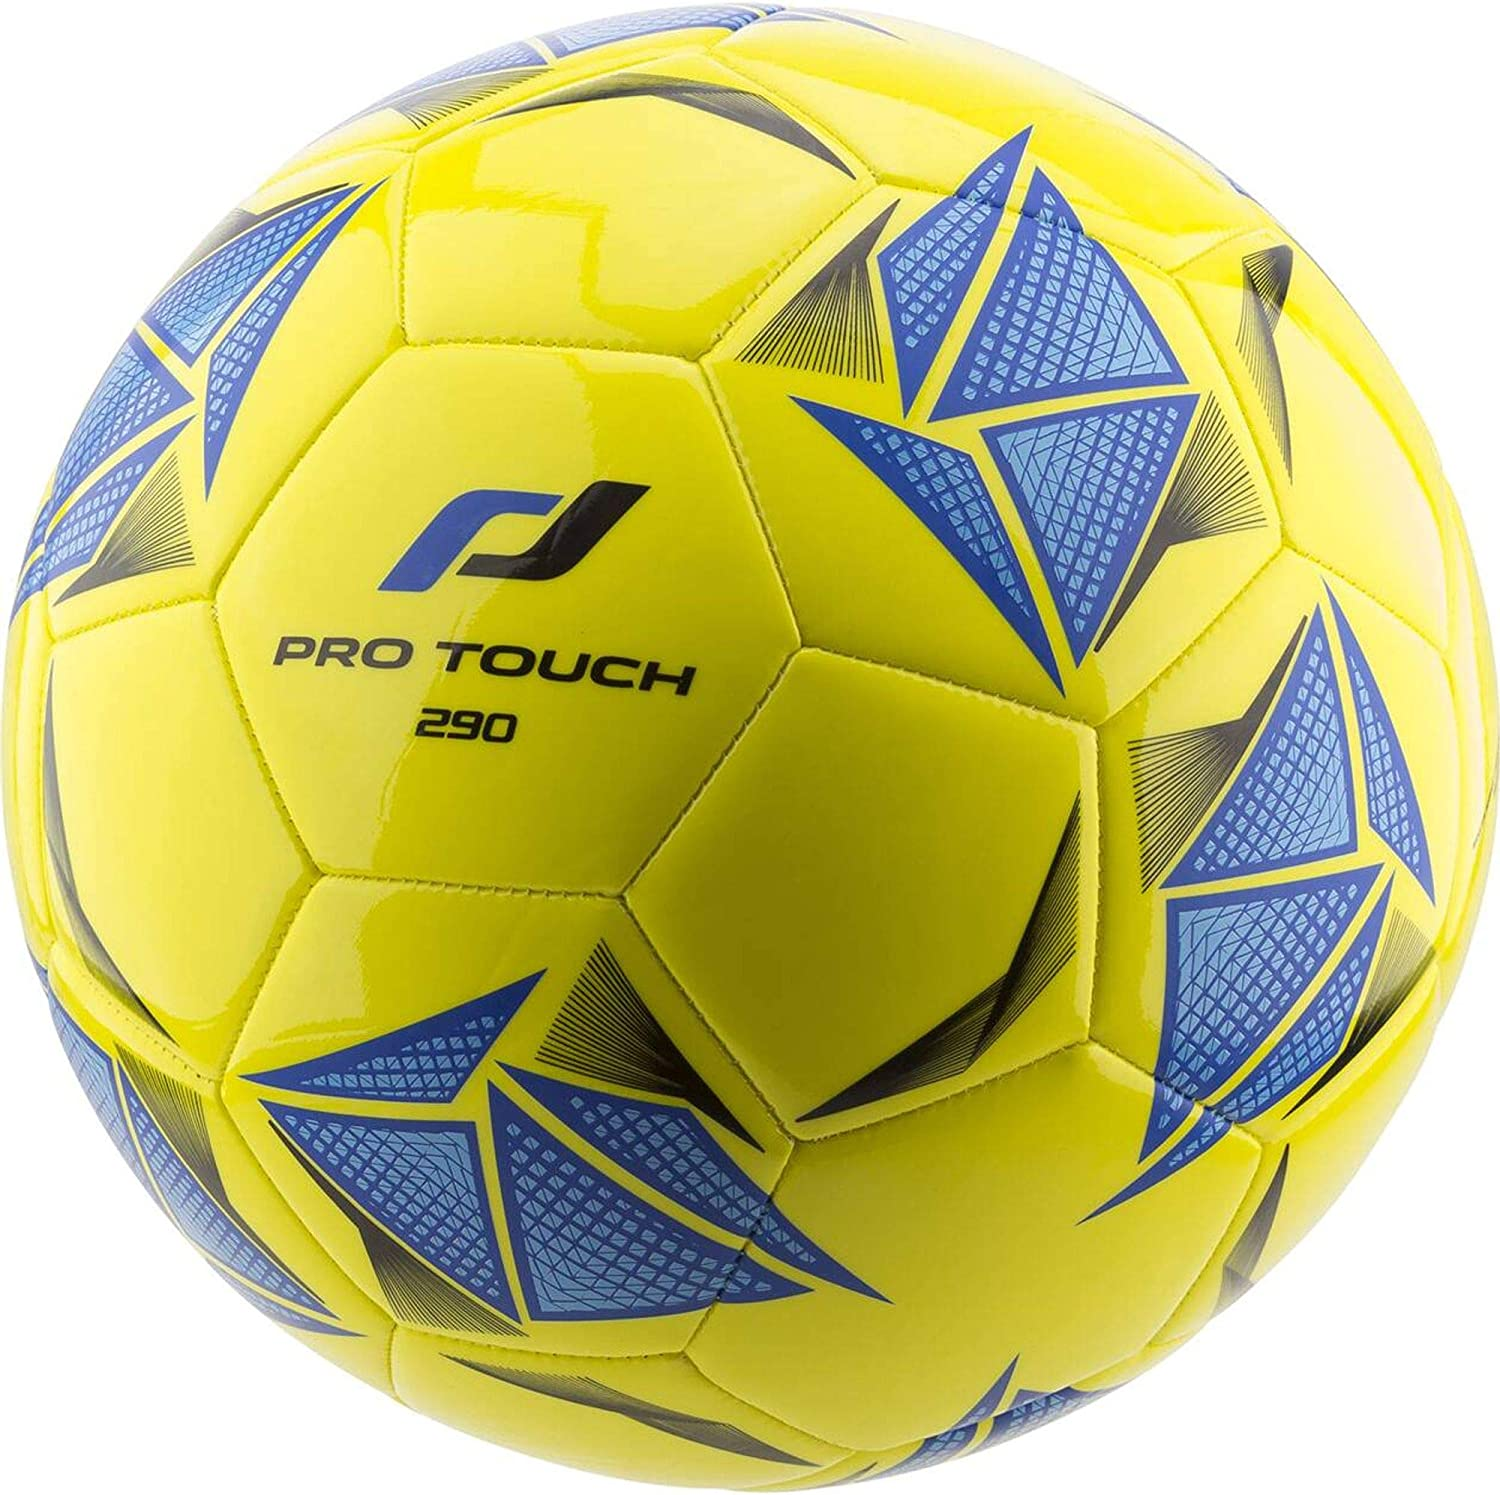 Amazon Com Pro Touch Fußball 290 Lite Sports Outdoors